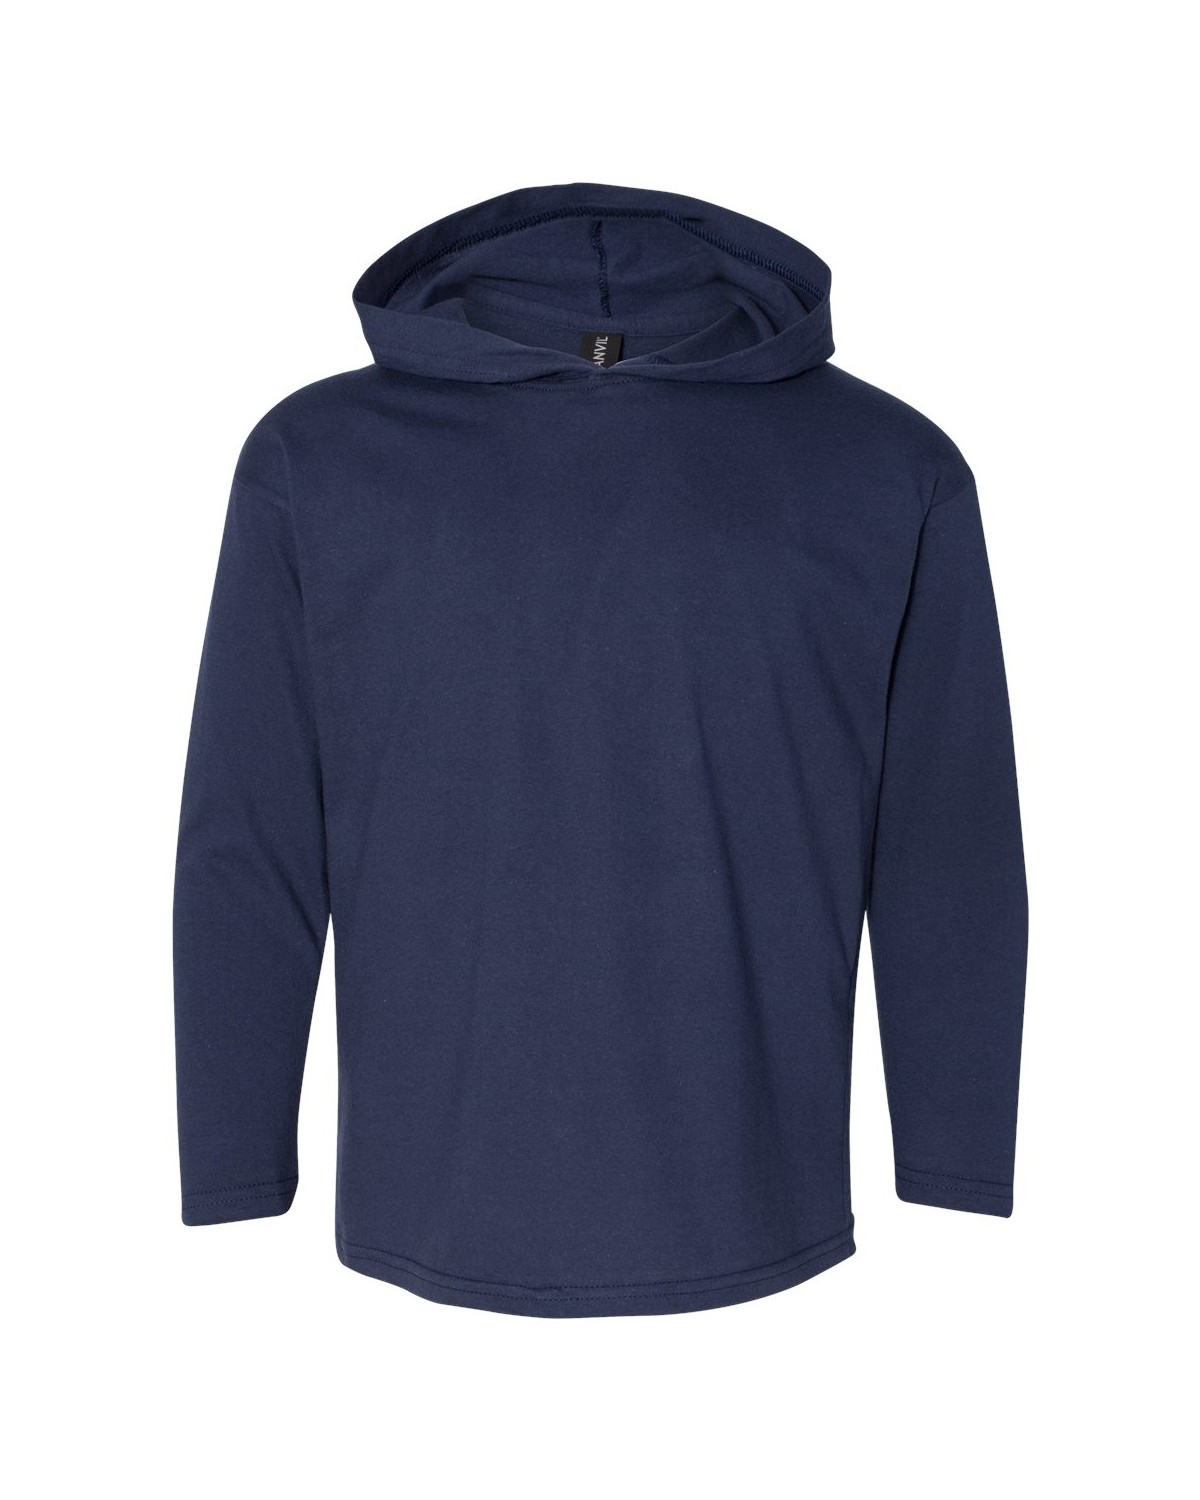 SS3000 Independent Trading GREY HEATHER